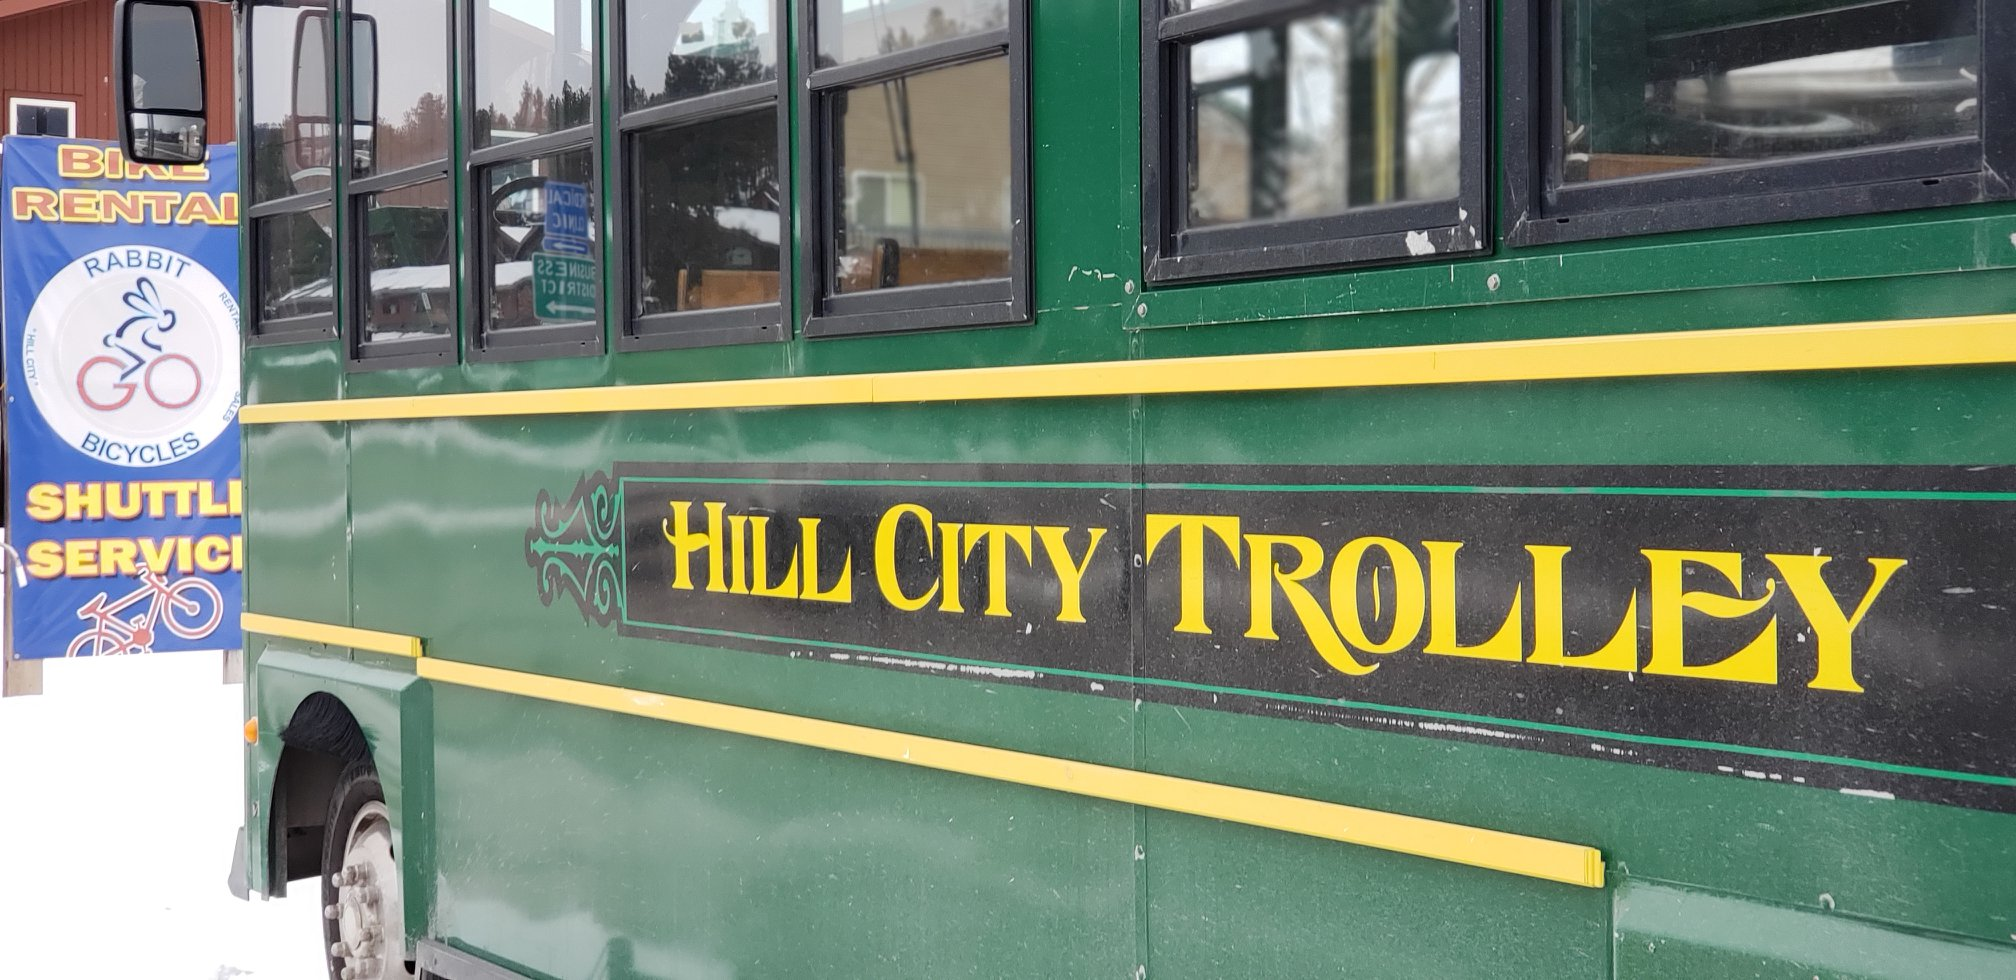 The new Hill City Trolley!